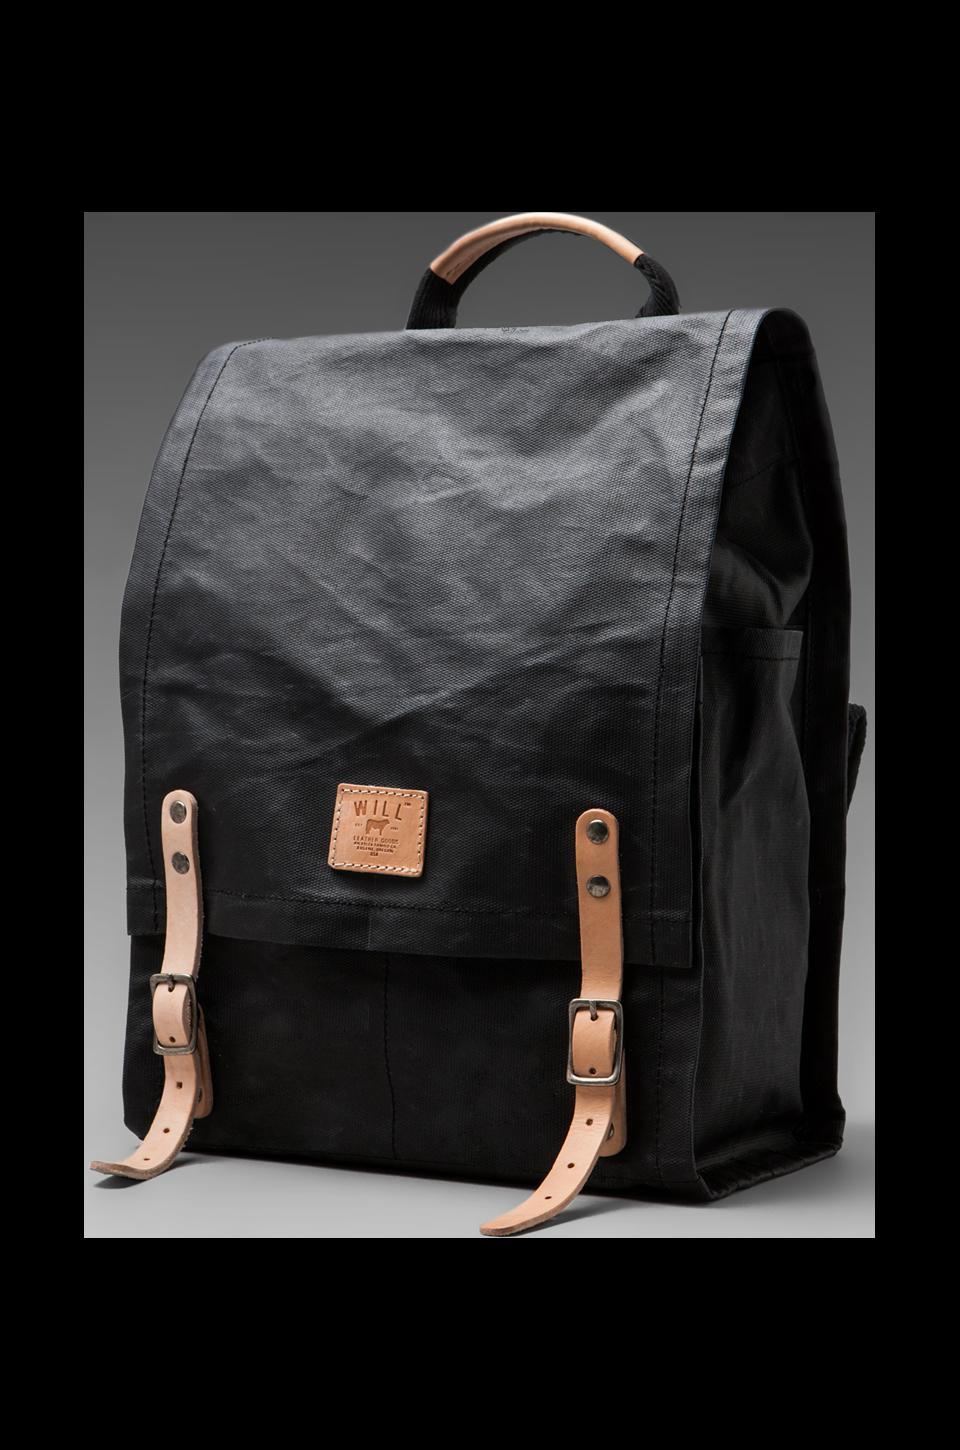 WILL Leather Goods Wax Coated Canvas Backpack en Noir